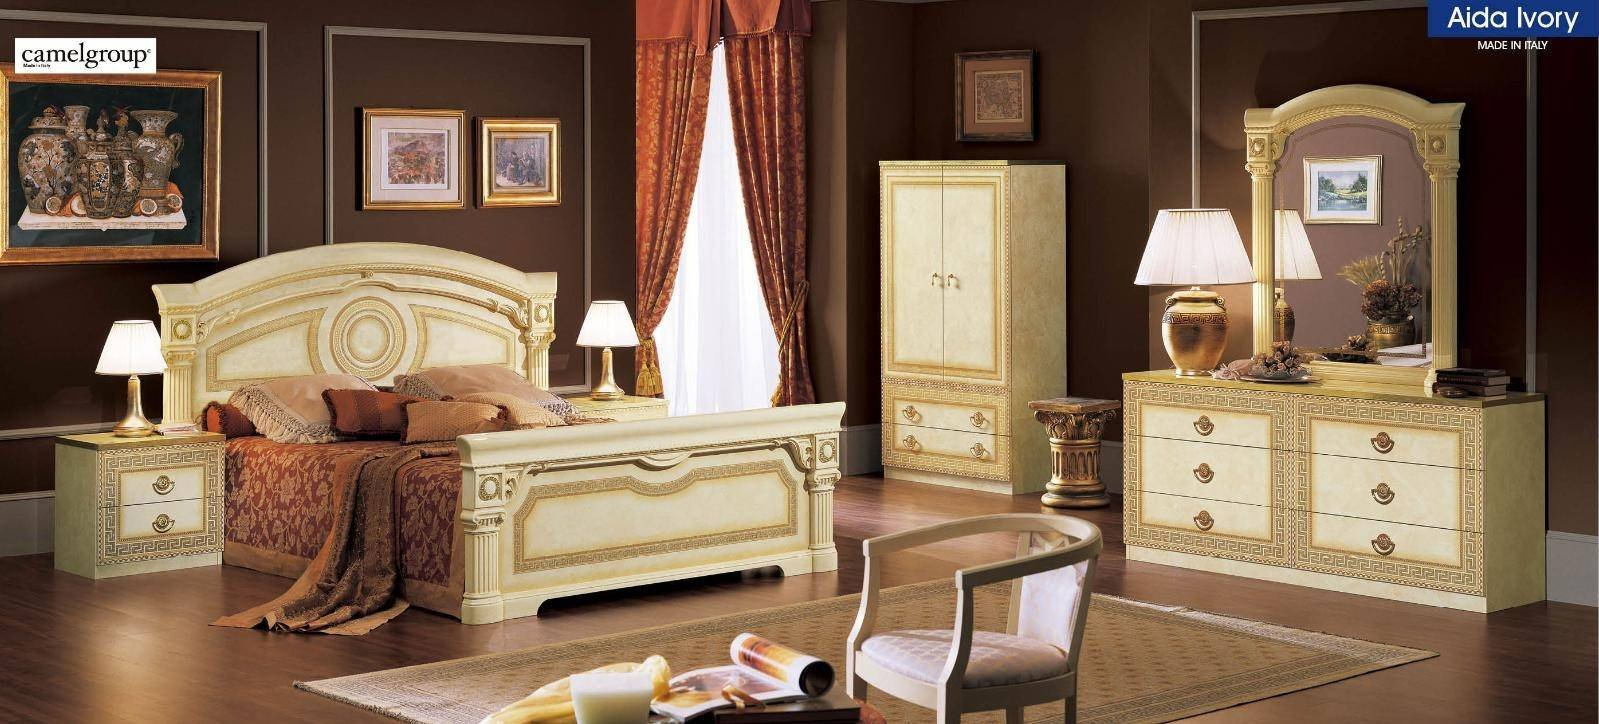 White Lacquer Bedroom Furniture Awesome Esf Aida Ivory Gold Lacquer Finish Queen Bedroom Set 5ps